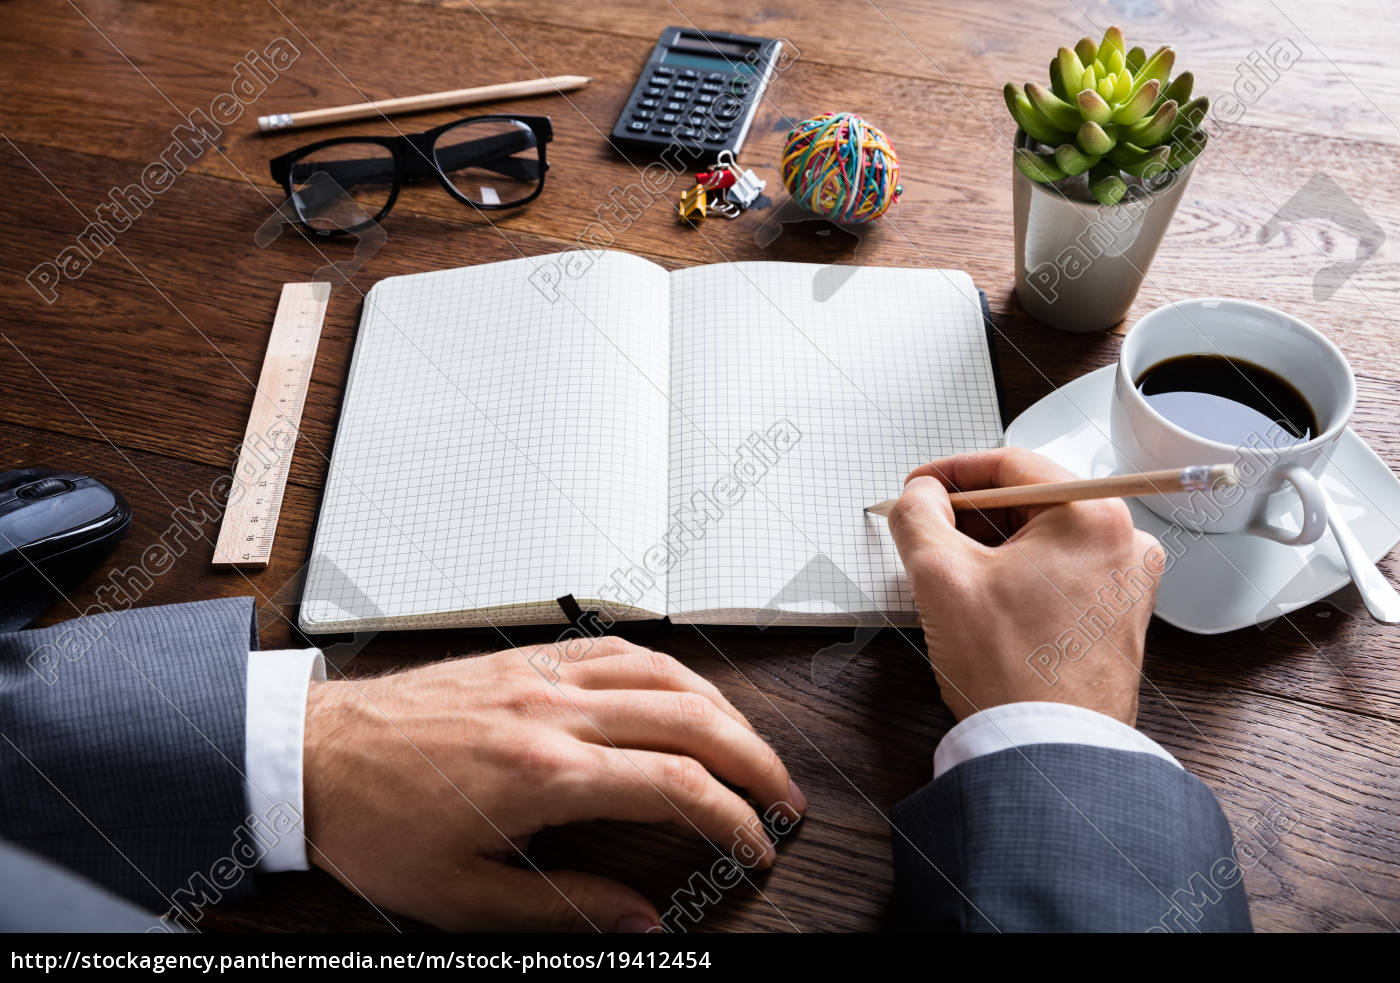 businessperson, hand, holding, pencil, on, notebook - 19412454